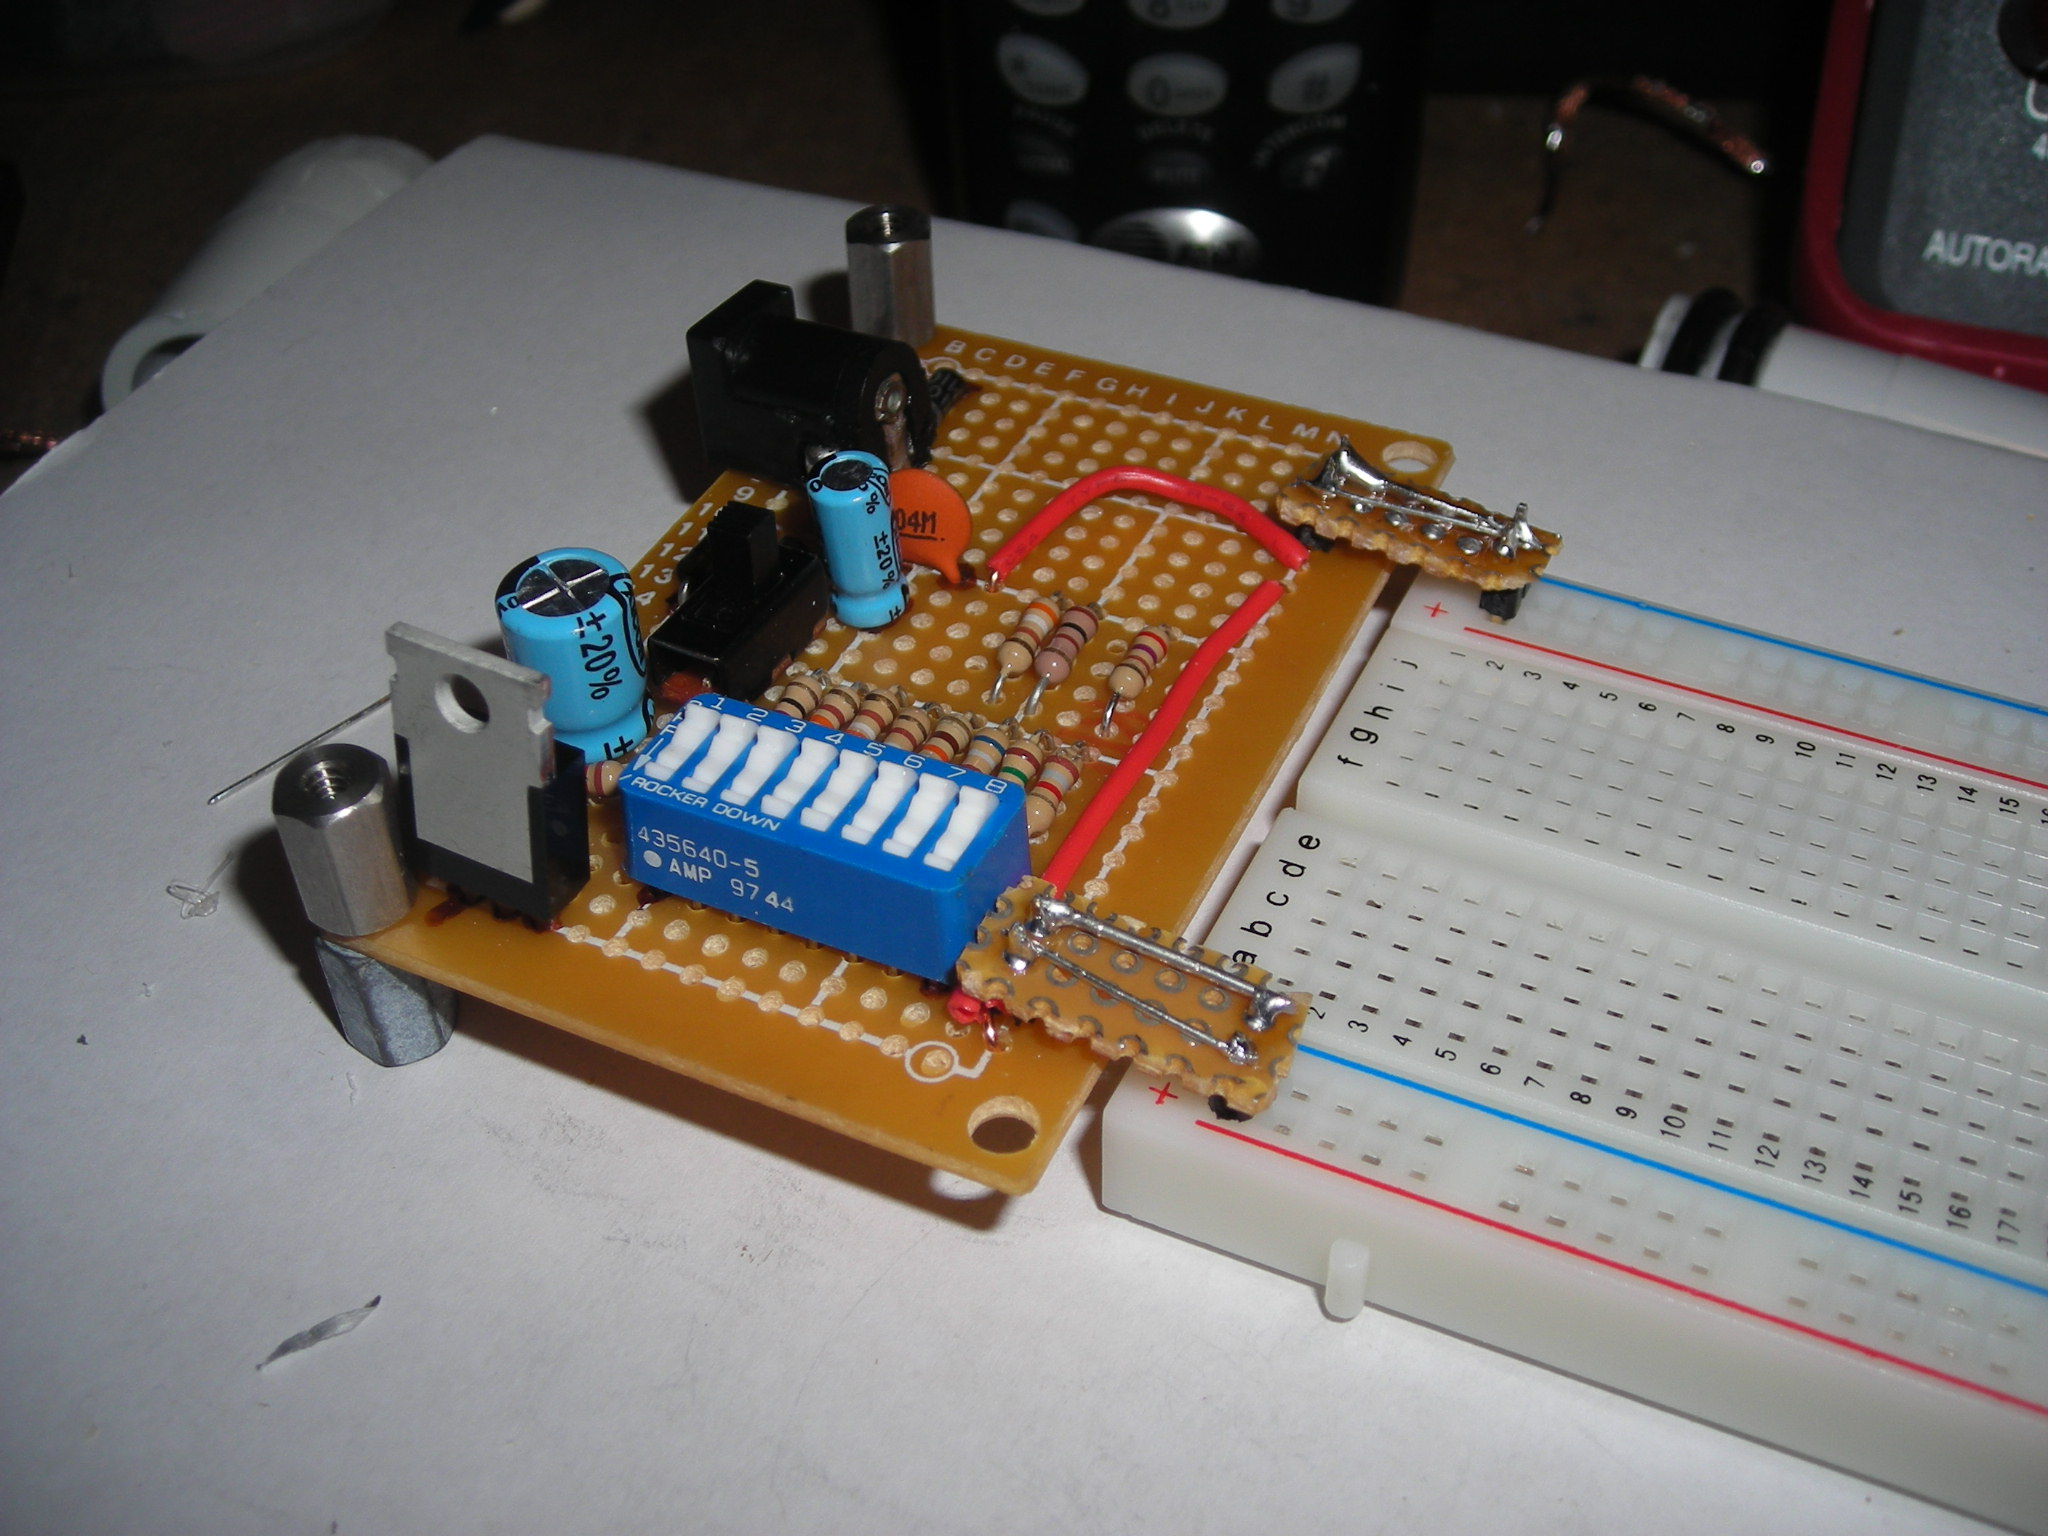 The Radioshack, Adjustable, Breadboard Power Supply.